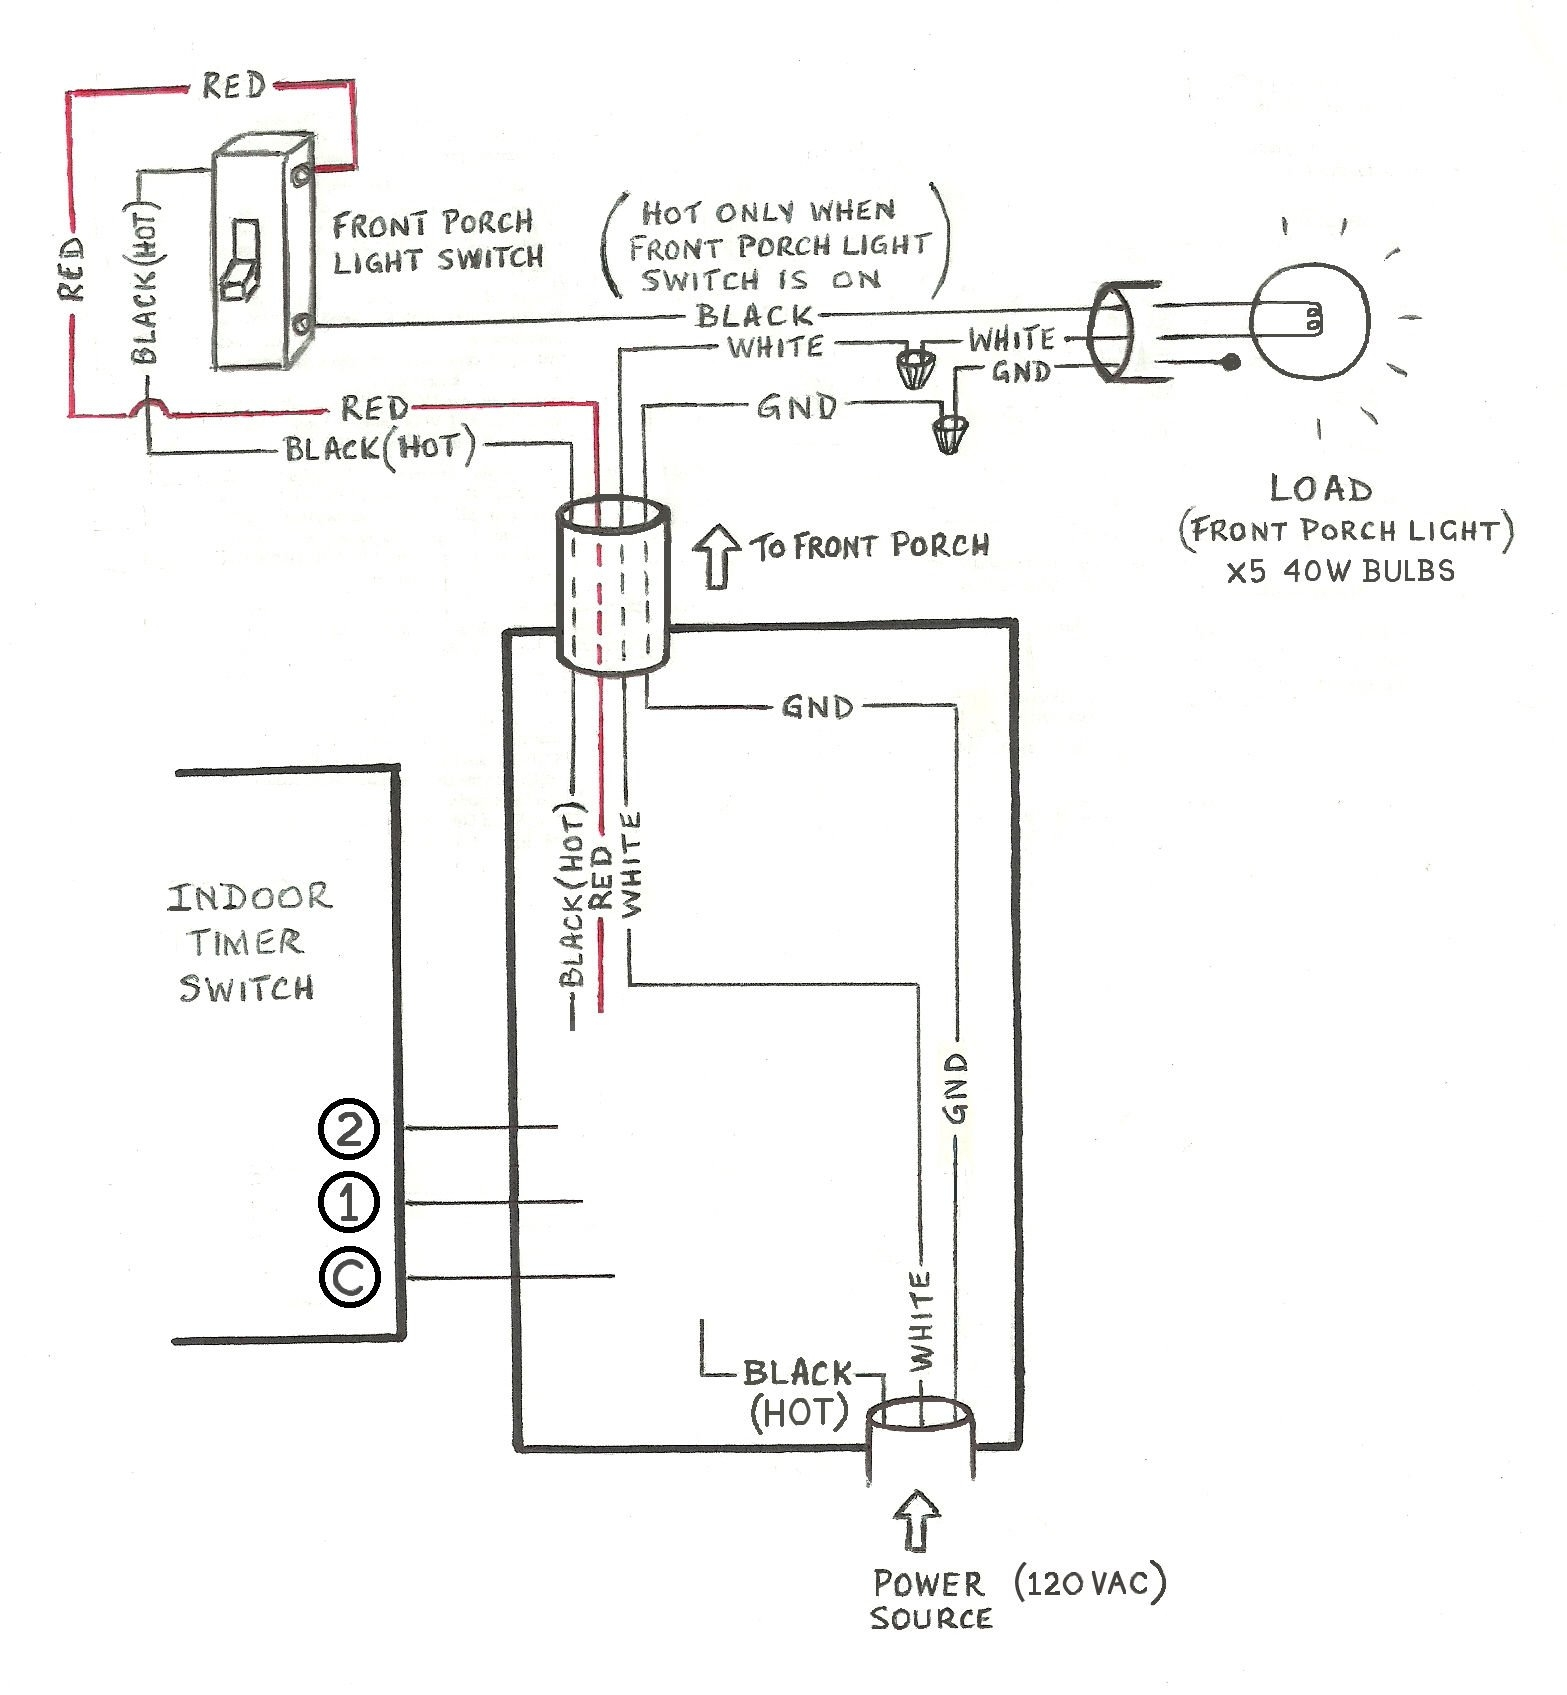 leviton 3 way switch wiring schematic | free wiring diagram leviton rj45 wiring diagram #11